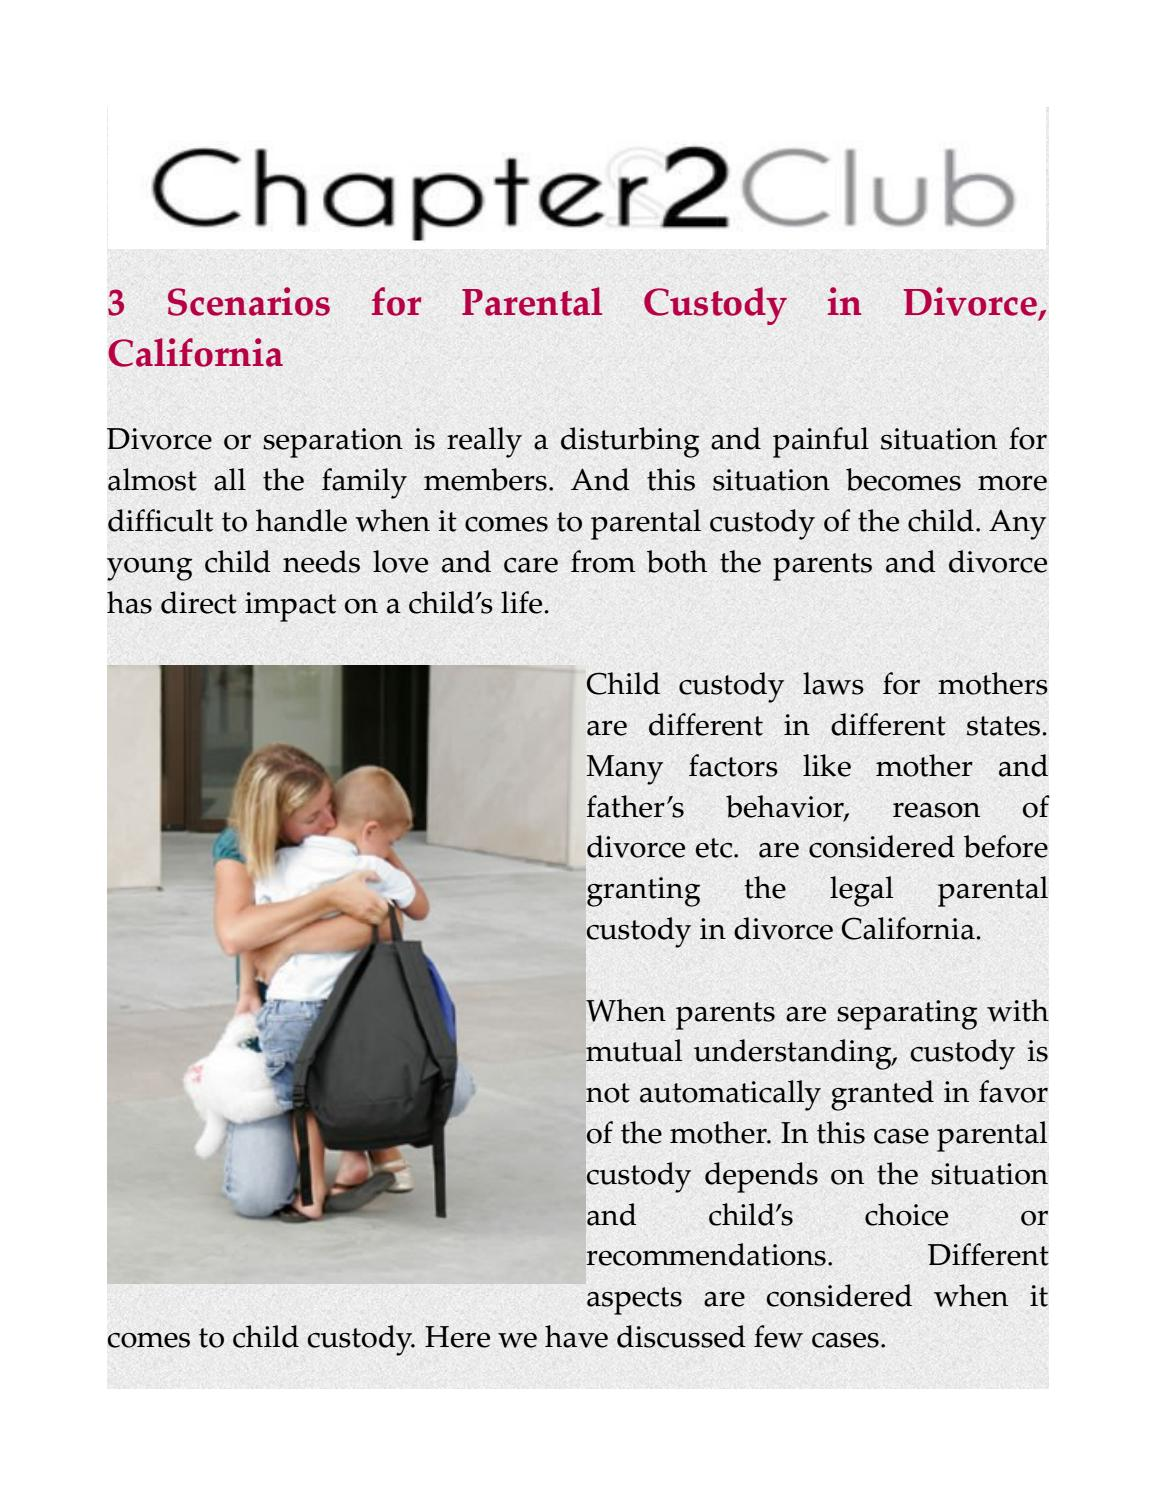 Difficult choice: how to get divorced if there is a child